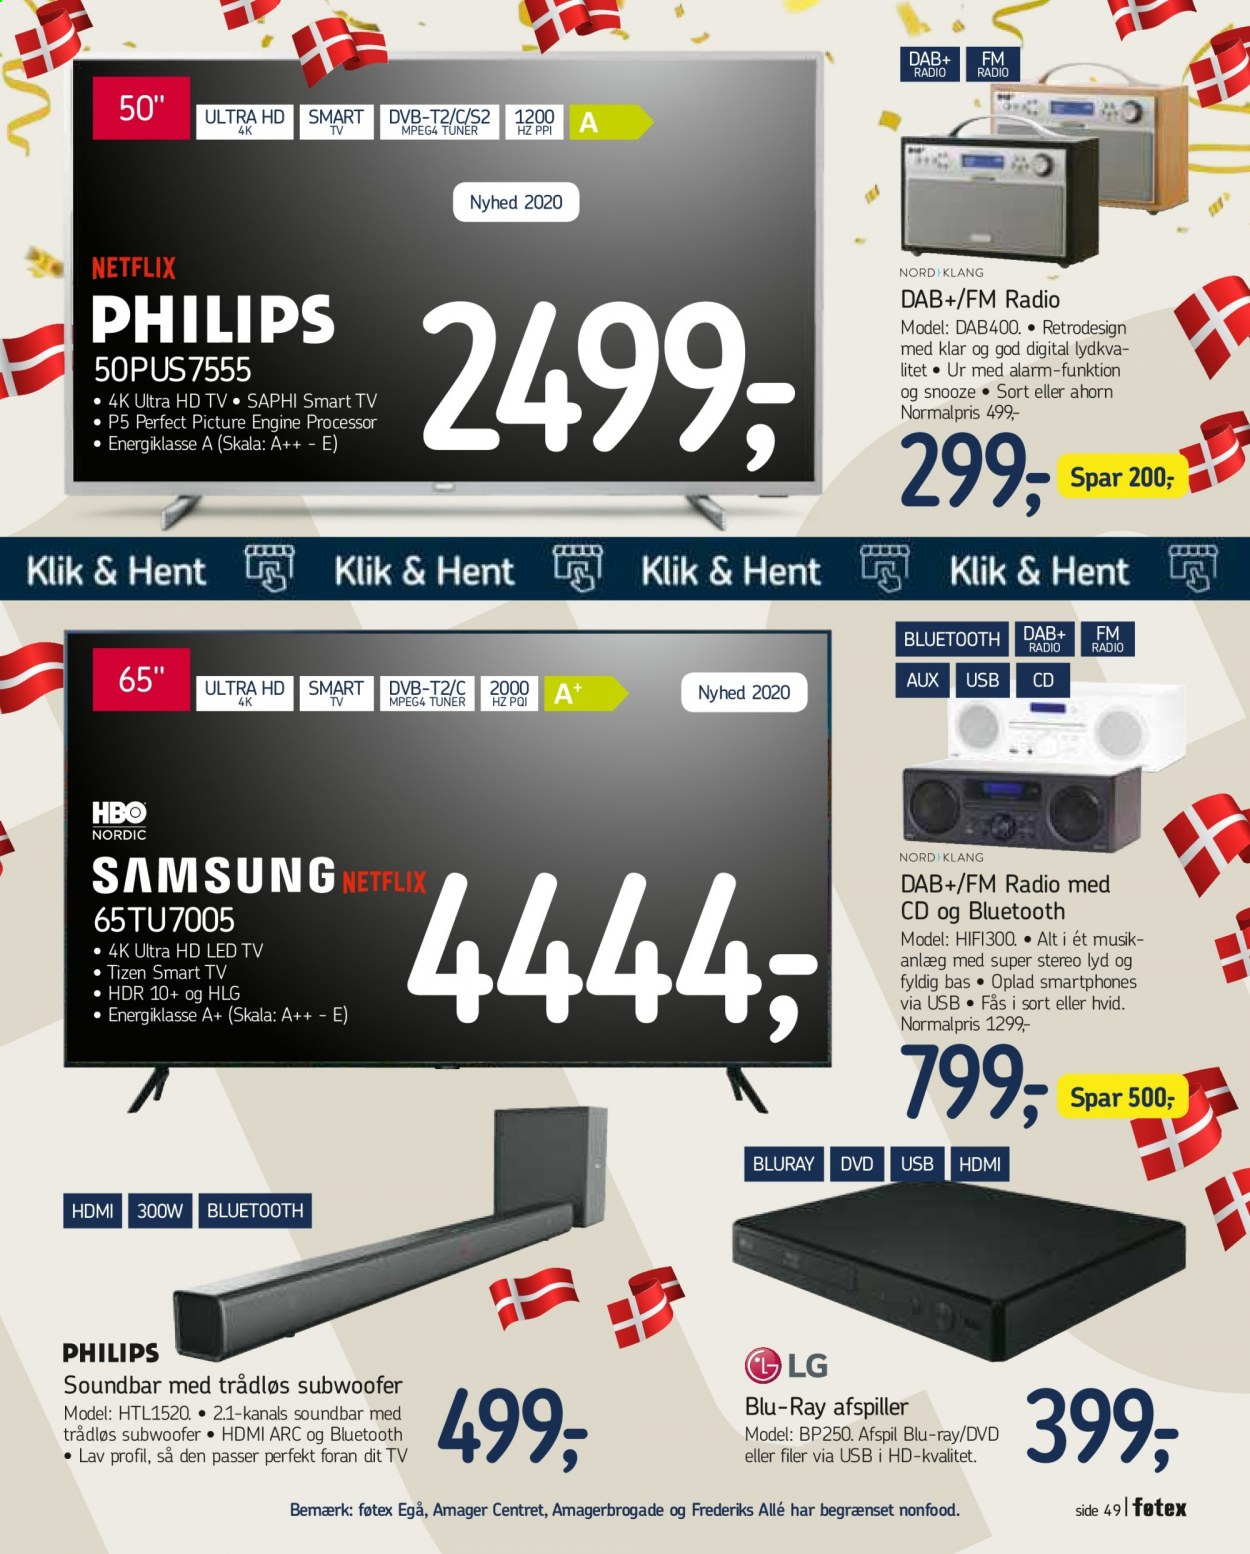 føtex tilbud  - 18.09.2020 - 24.09.2020 - tilbudsprodukter - dvd, led tv, nyhed, smart tv, soundbar, subwoofer, tv, ur. Side 54.